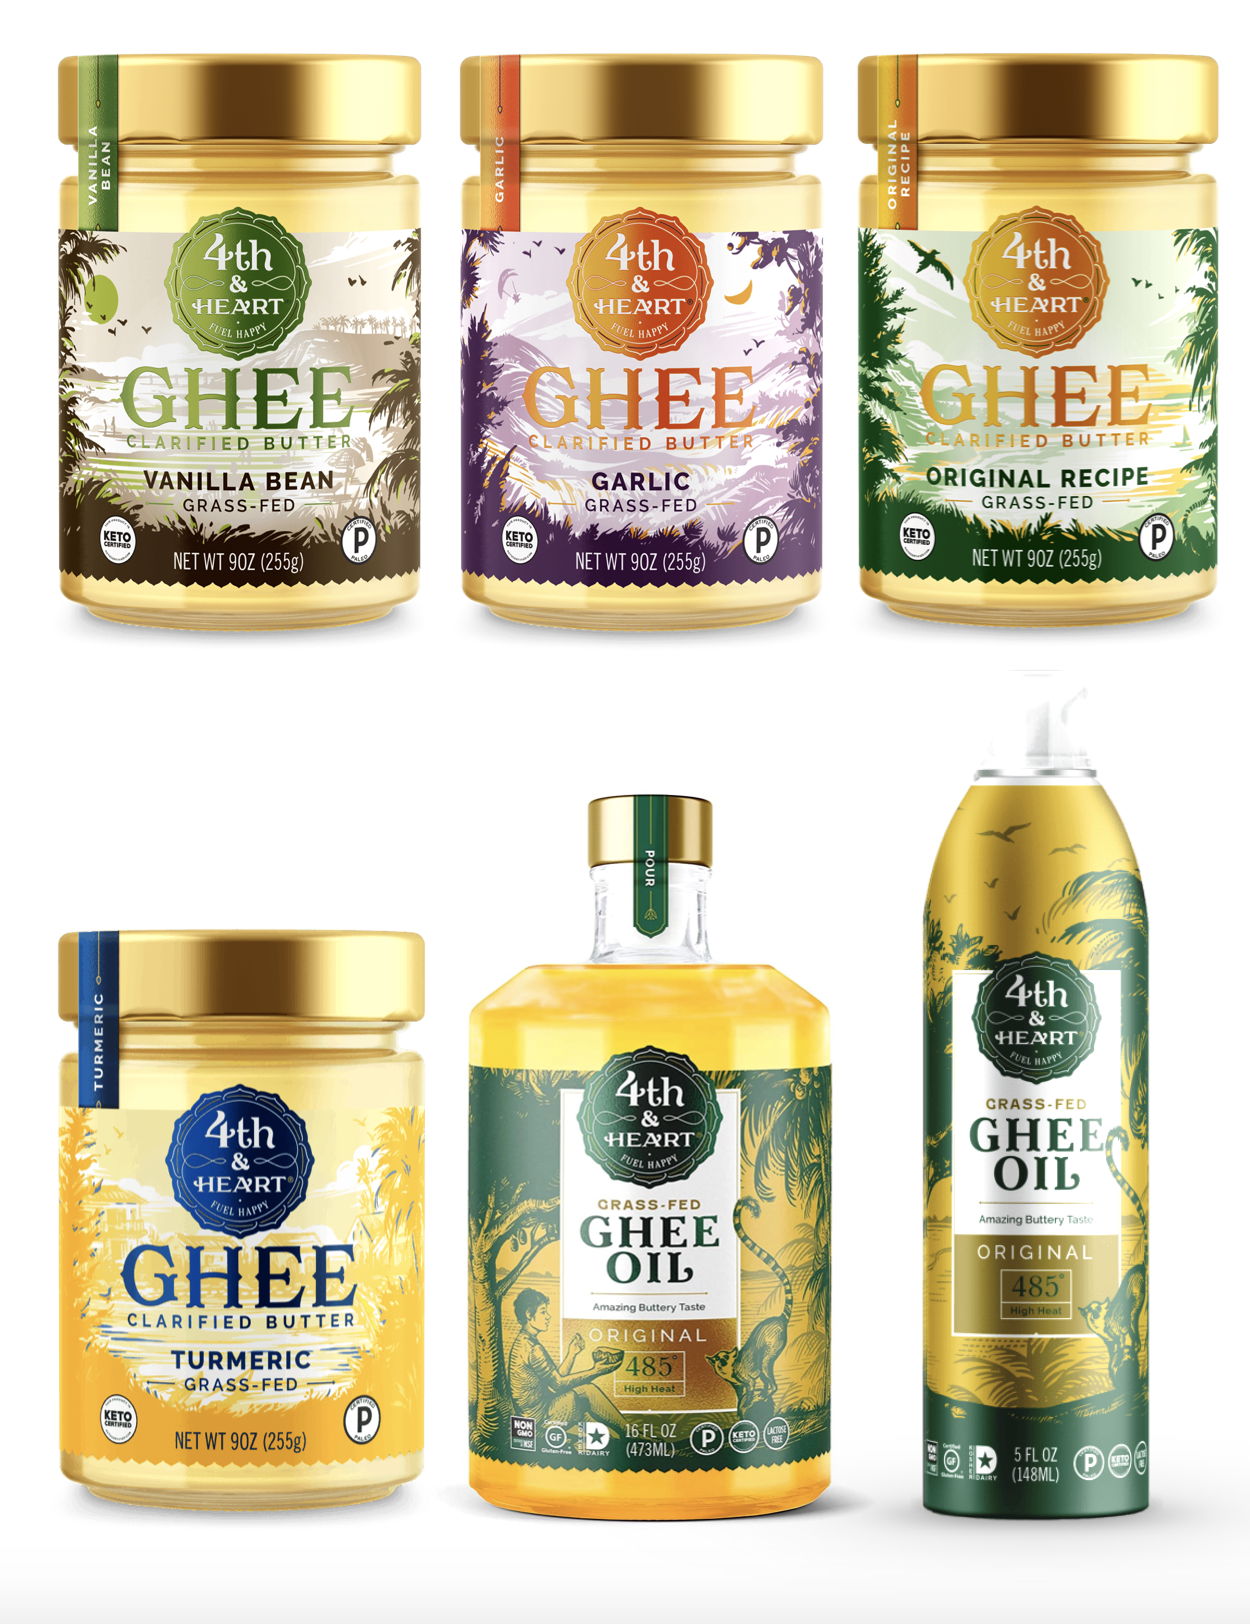 4th and Heart ghee Case Study Paleo and Keto Certifications